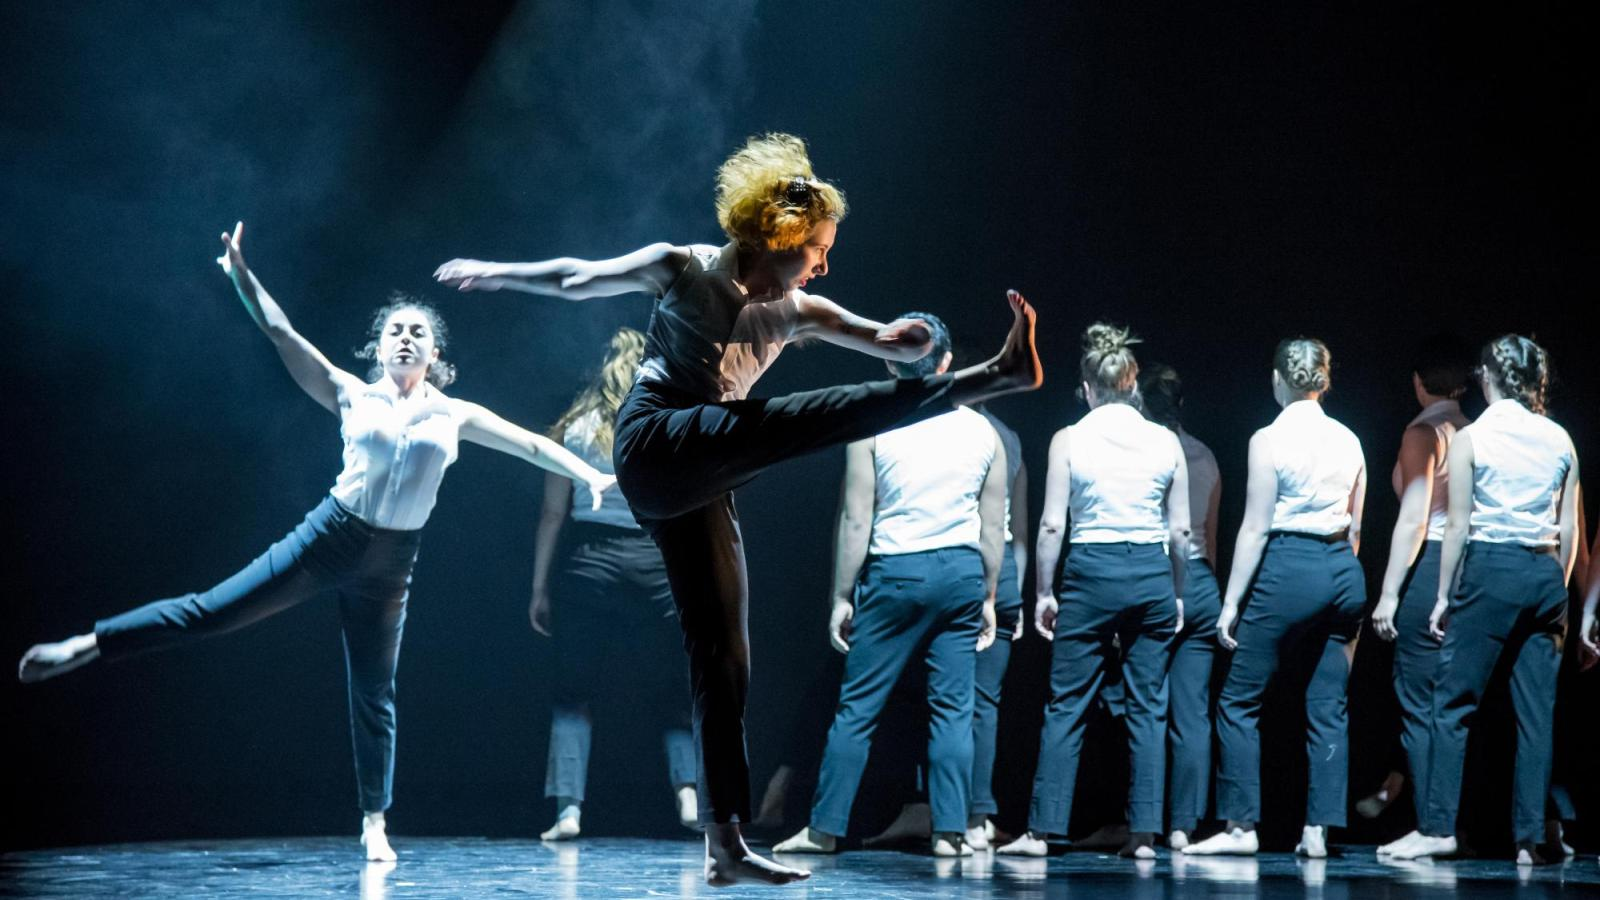 Two students dance downstage while several others stand upstage in a line